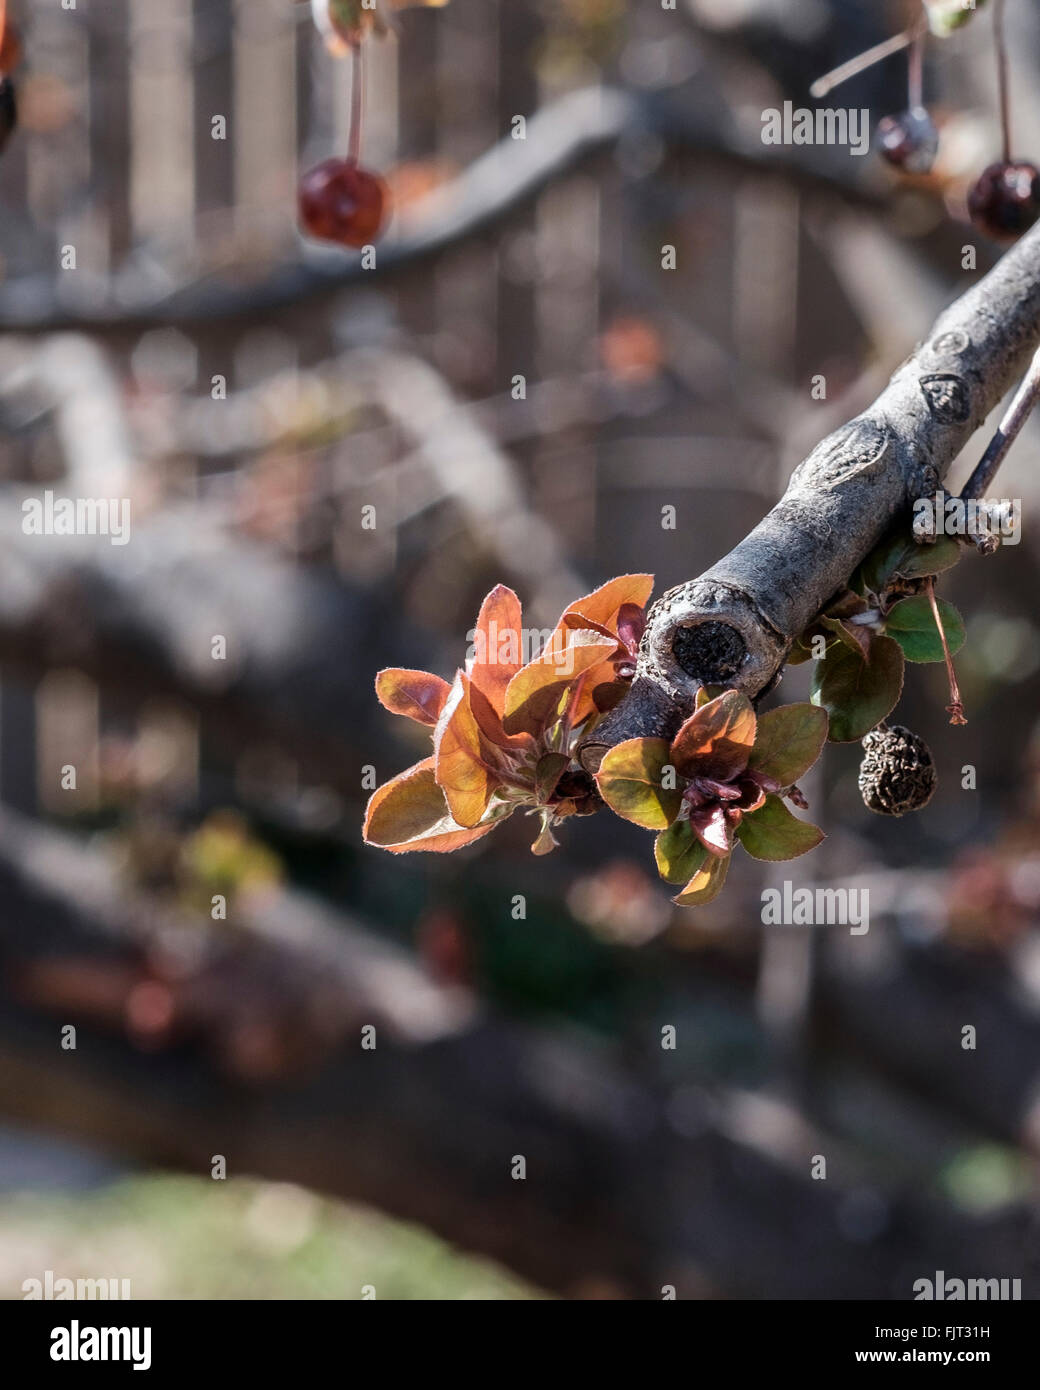 New spring leaves emerge in late February on a crabapple tree,Malus, in Oklahoma, USA. - Stock Image